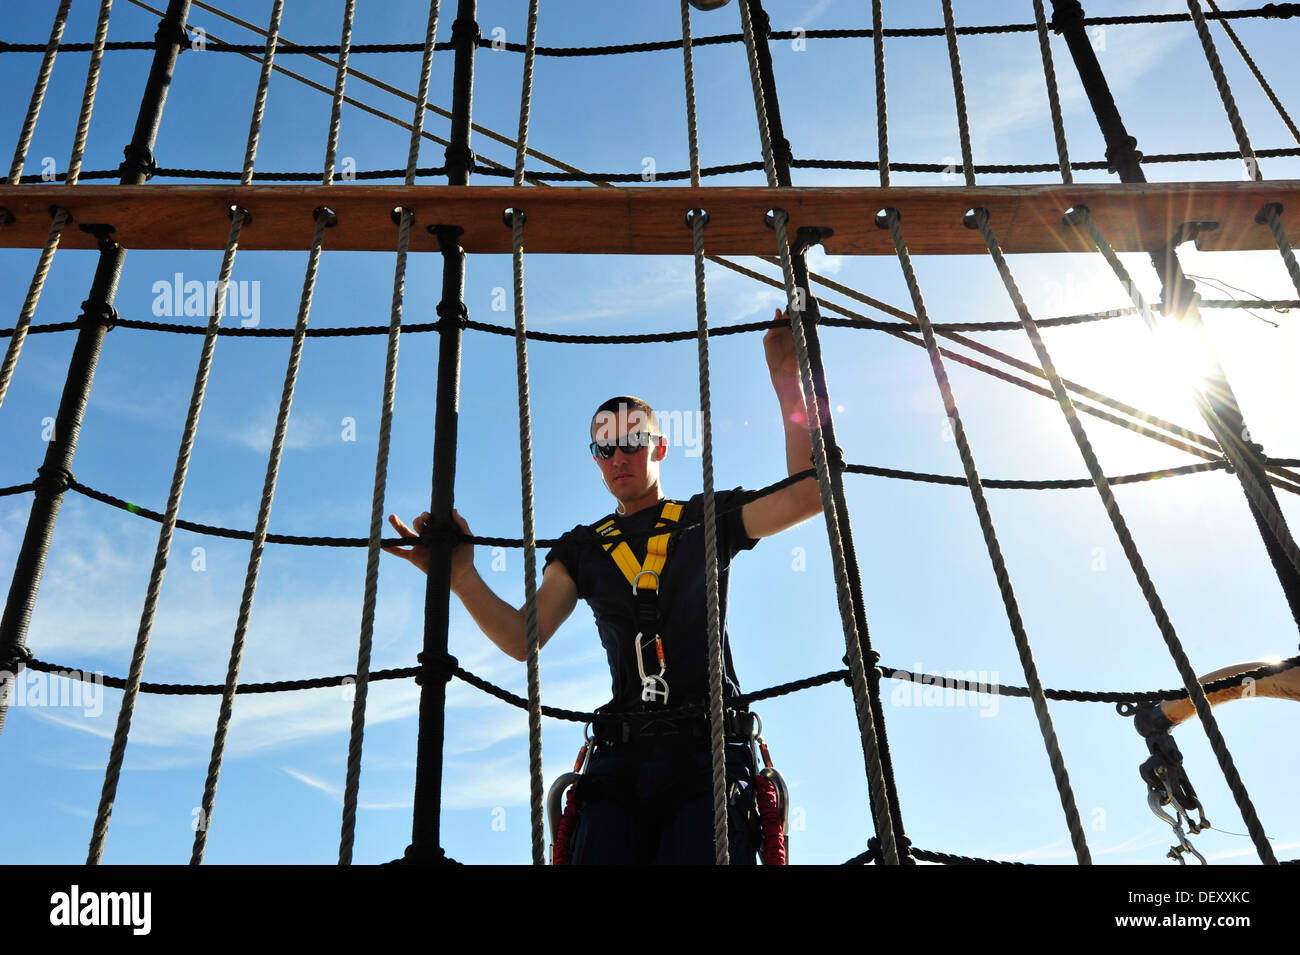 Coast Guard Barque Eagle crew member Seaman Joel Sprowls climbs down the rigging after furling sails aboard EAGLE on Wednesday, - Stock Image